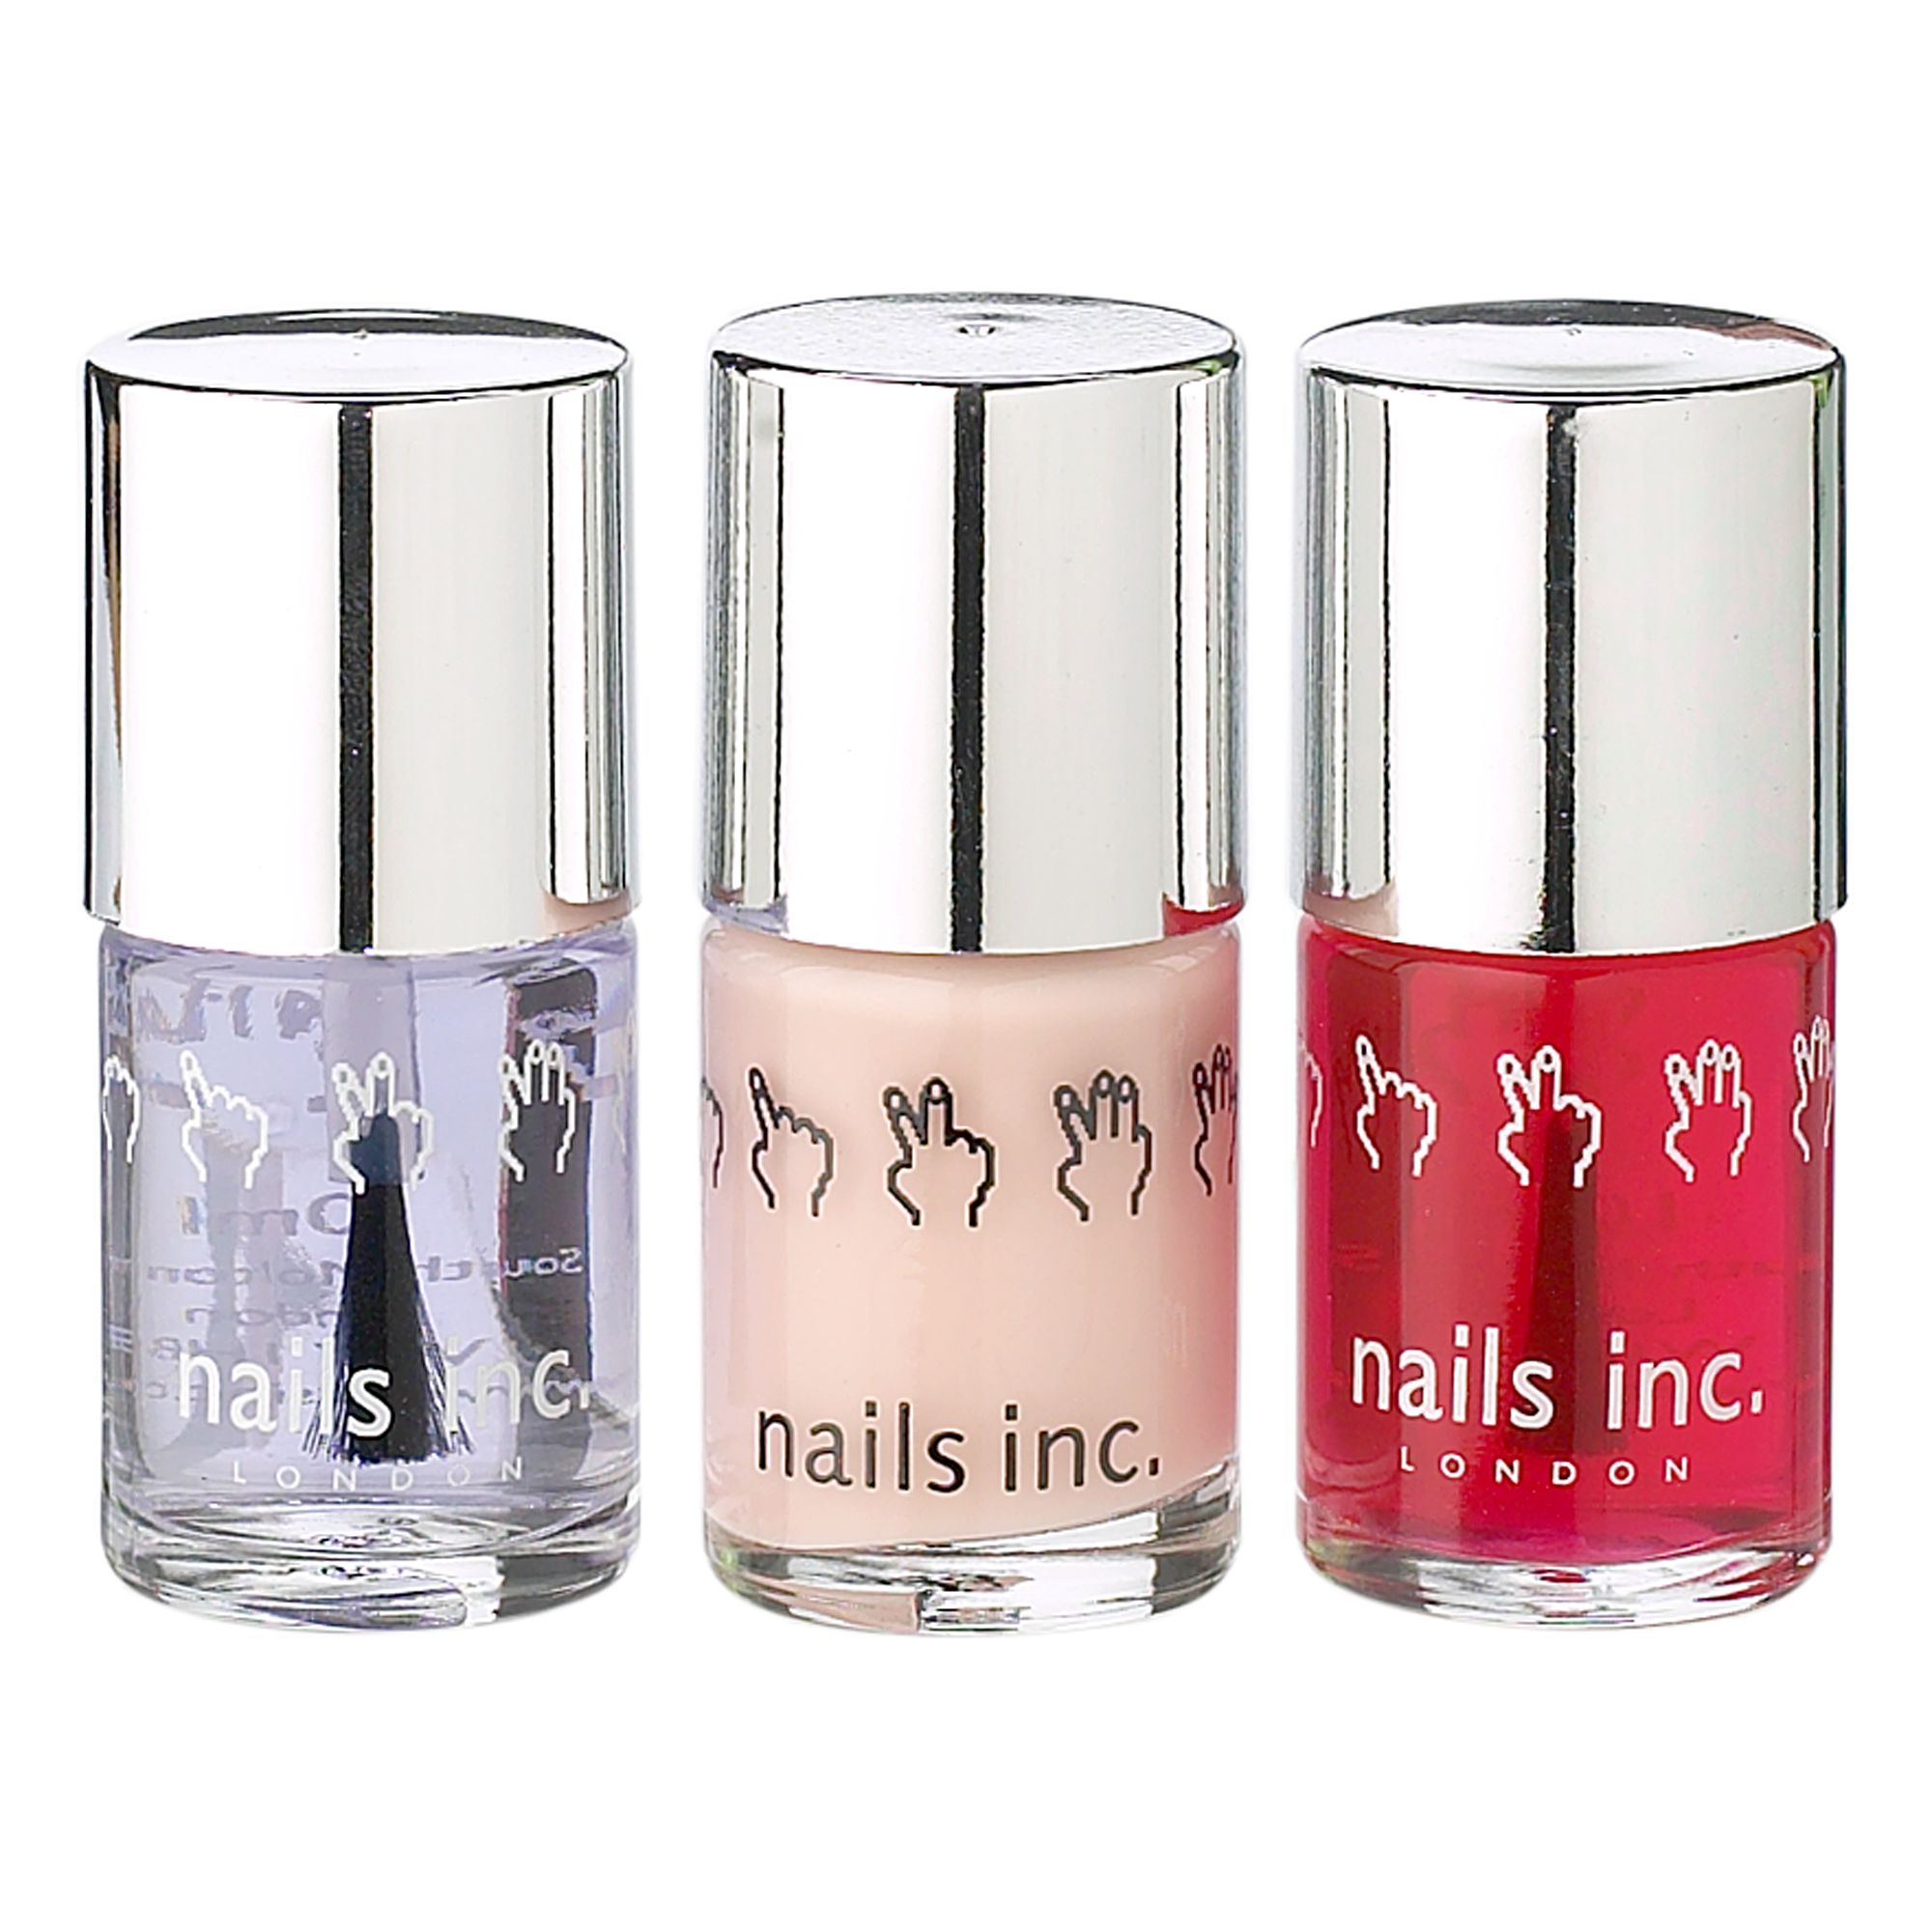 Nails Inc American manicure set product image